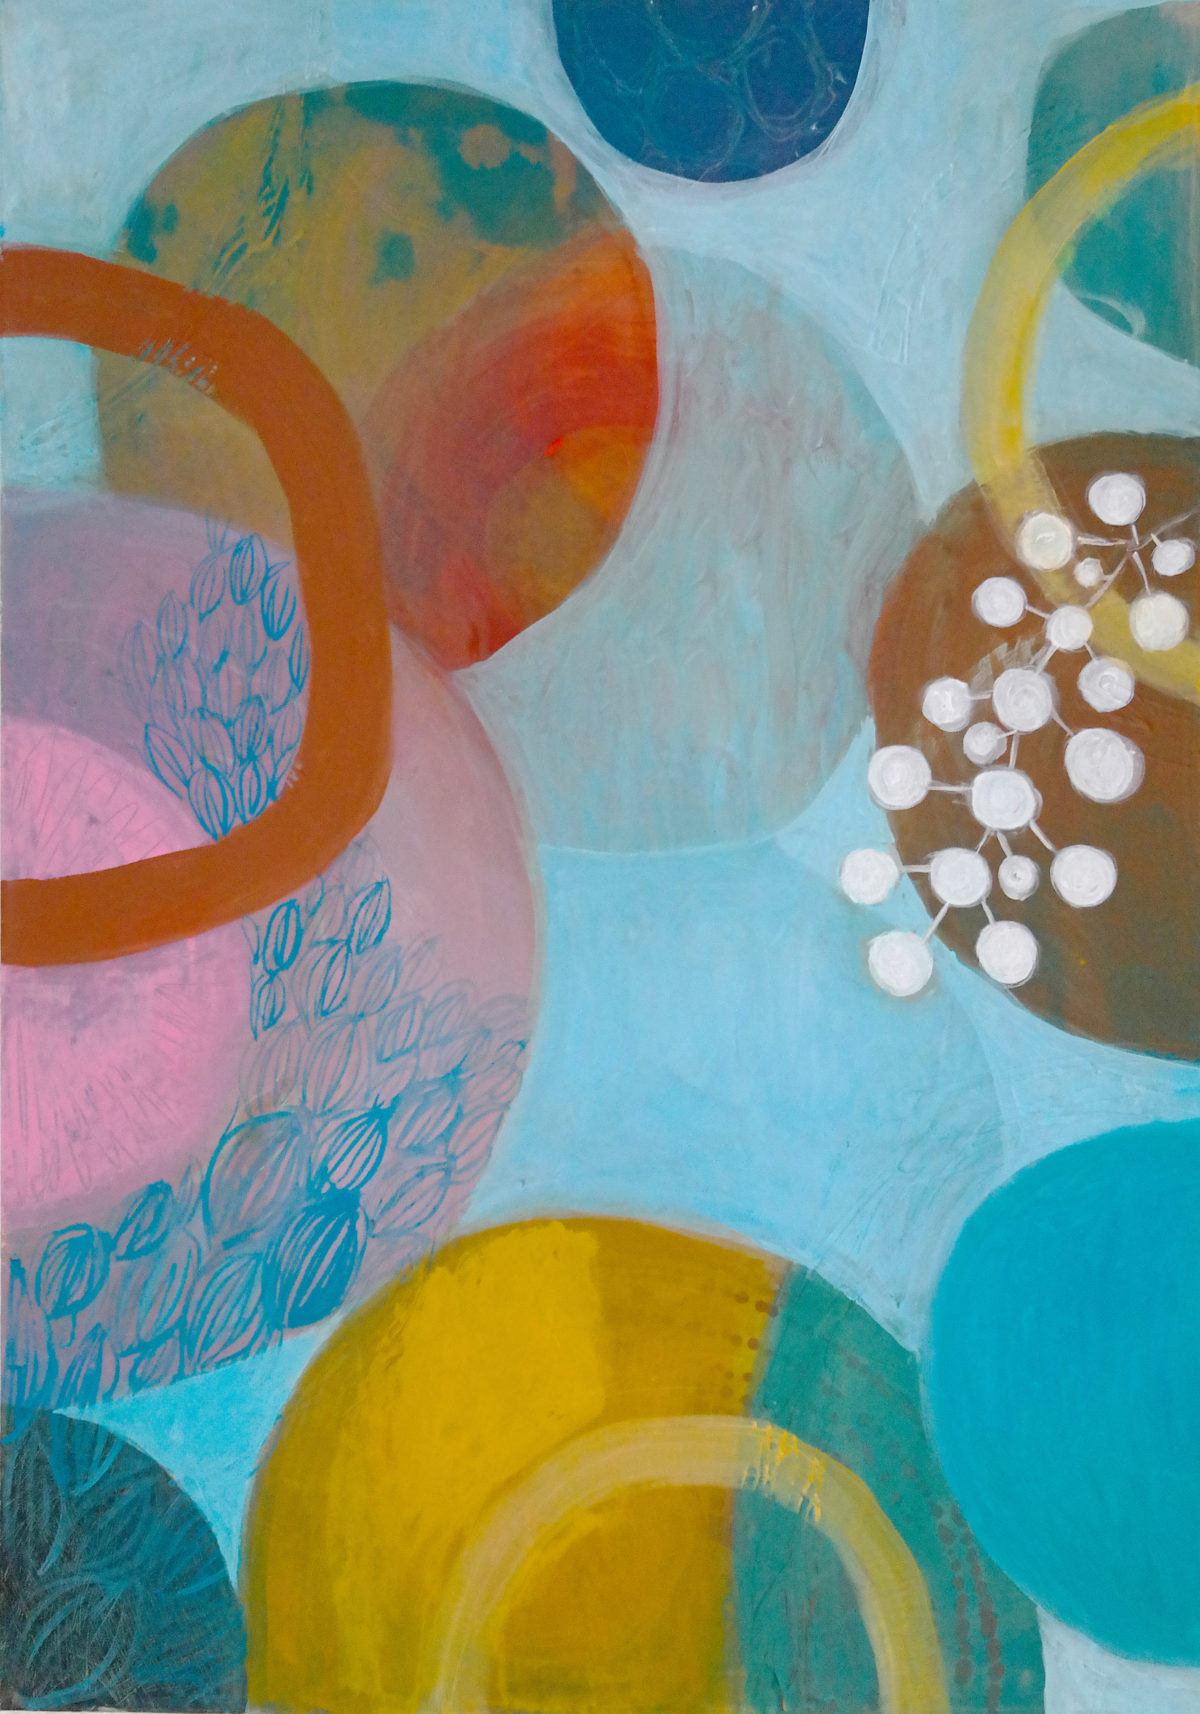 MVS, Circles in Space  painting